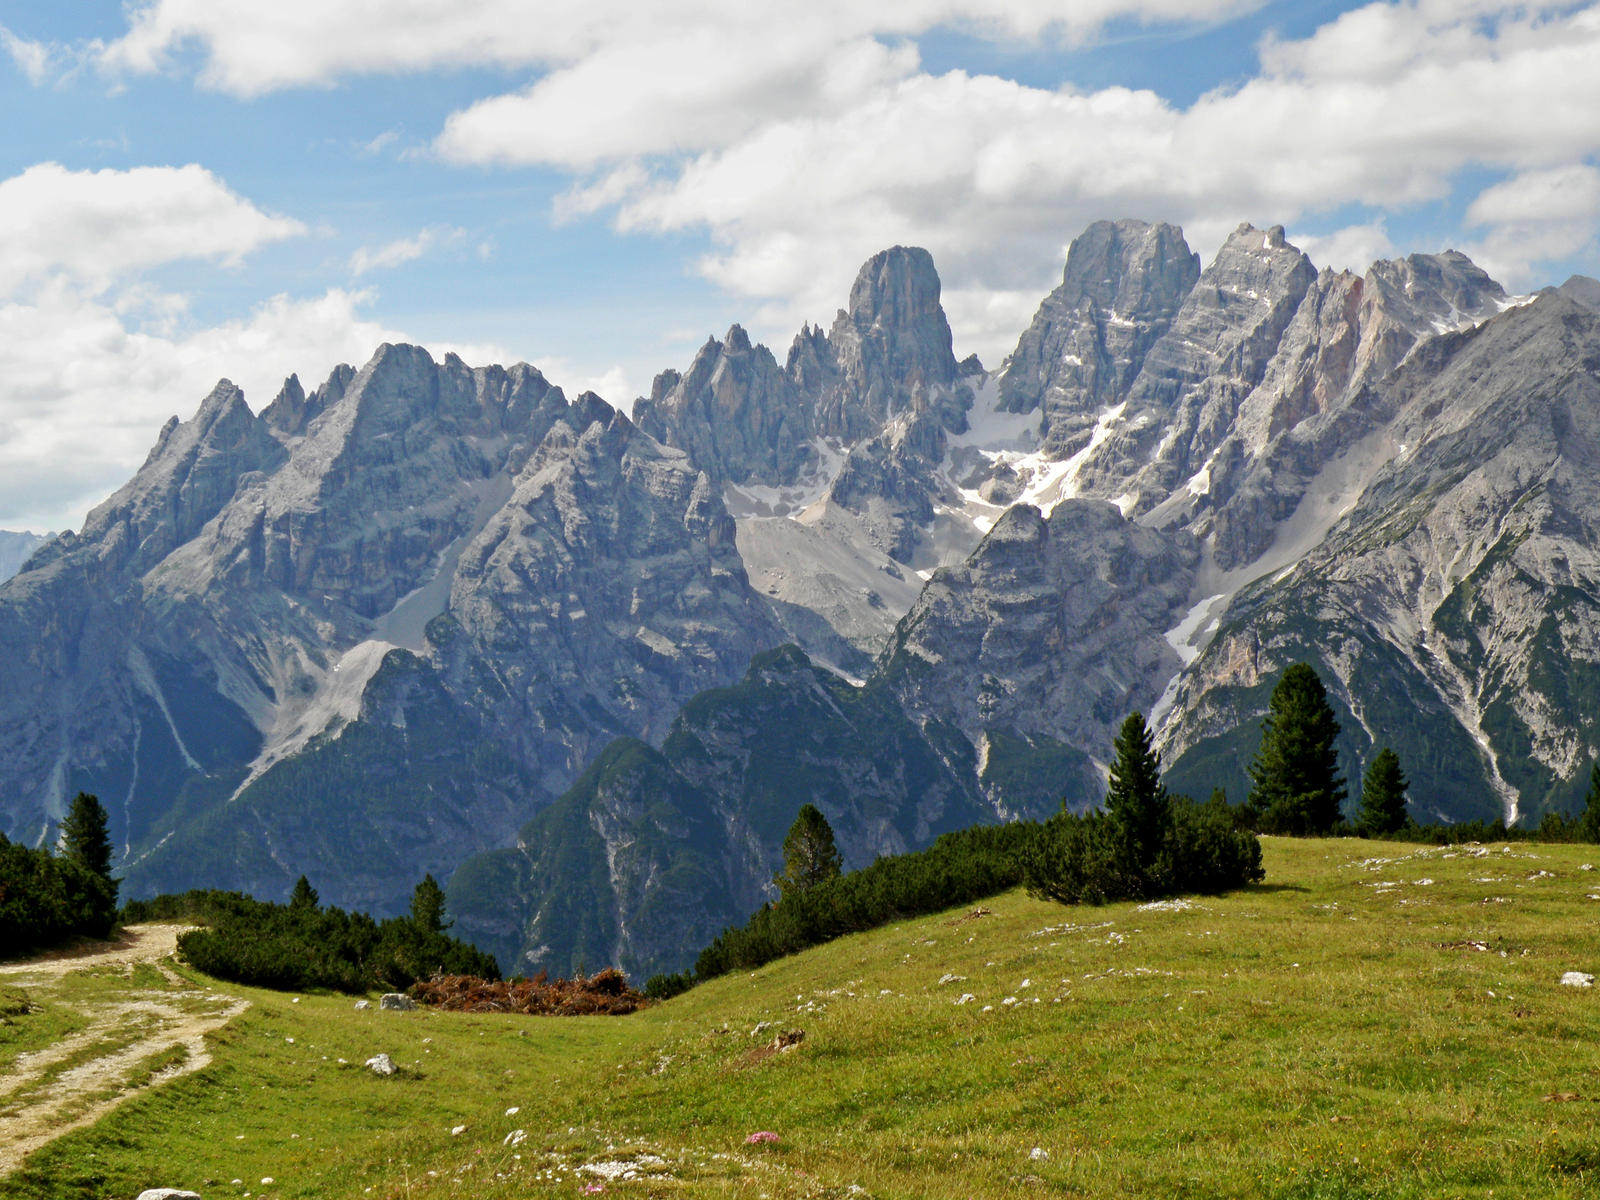 Mountains - Gruppo Cristallo by Sergiba